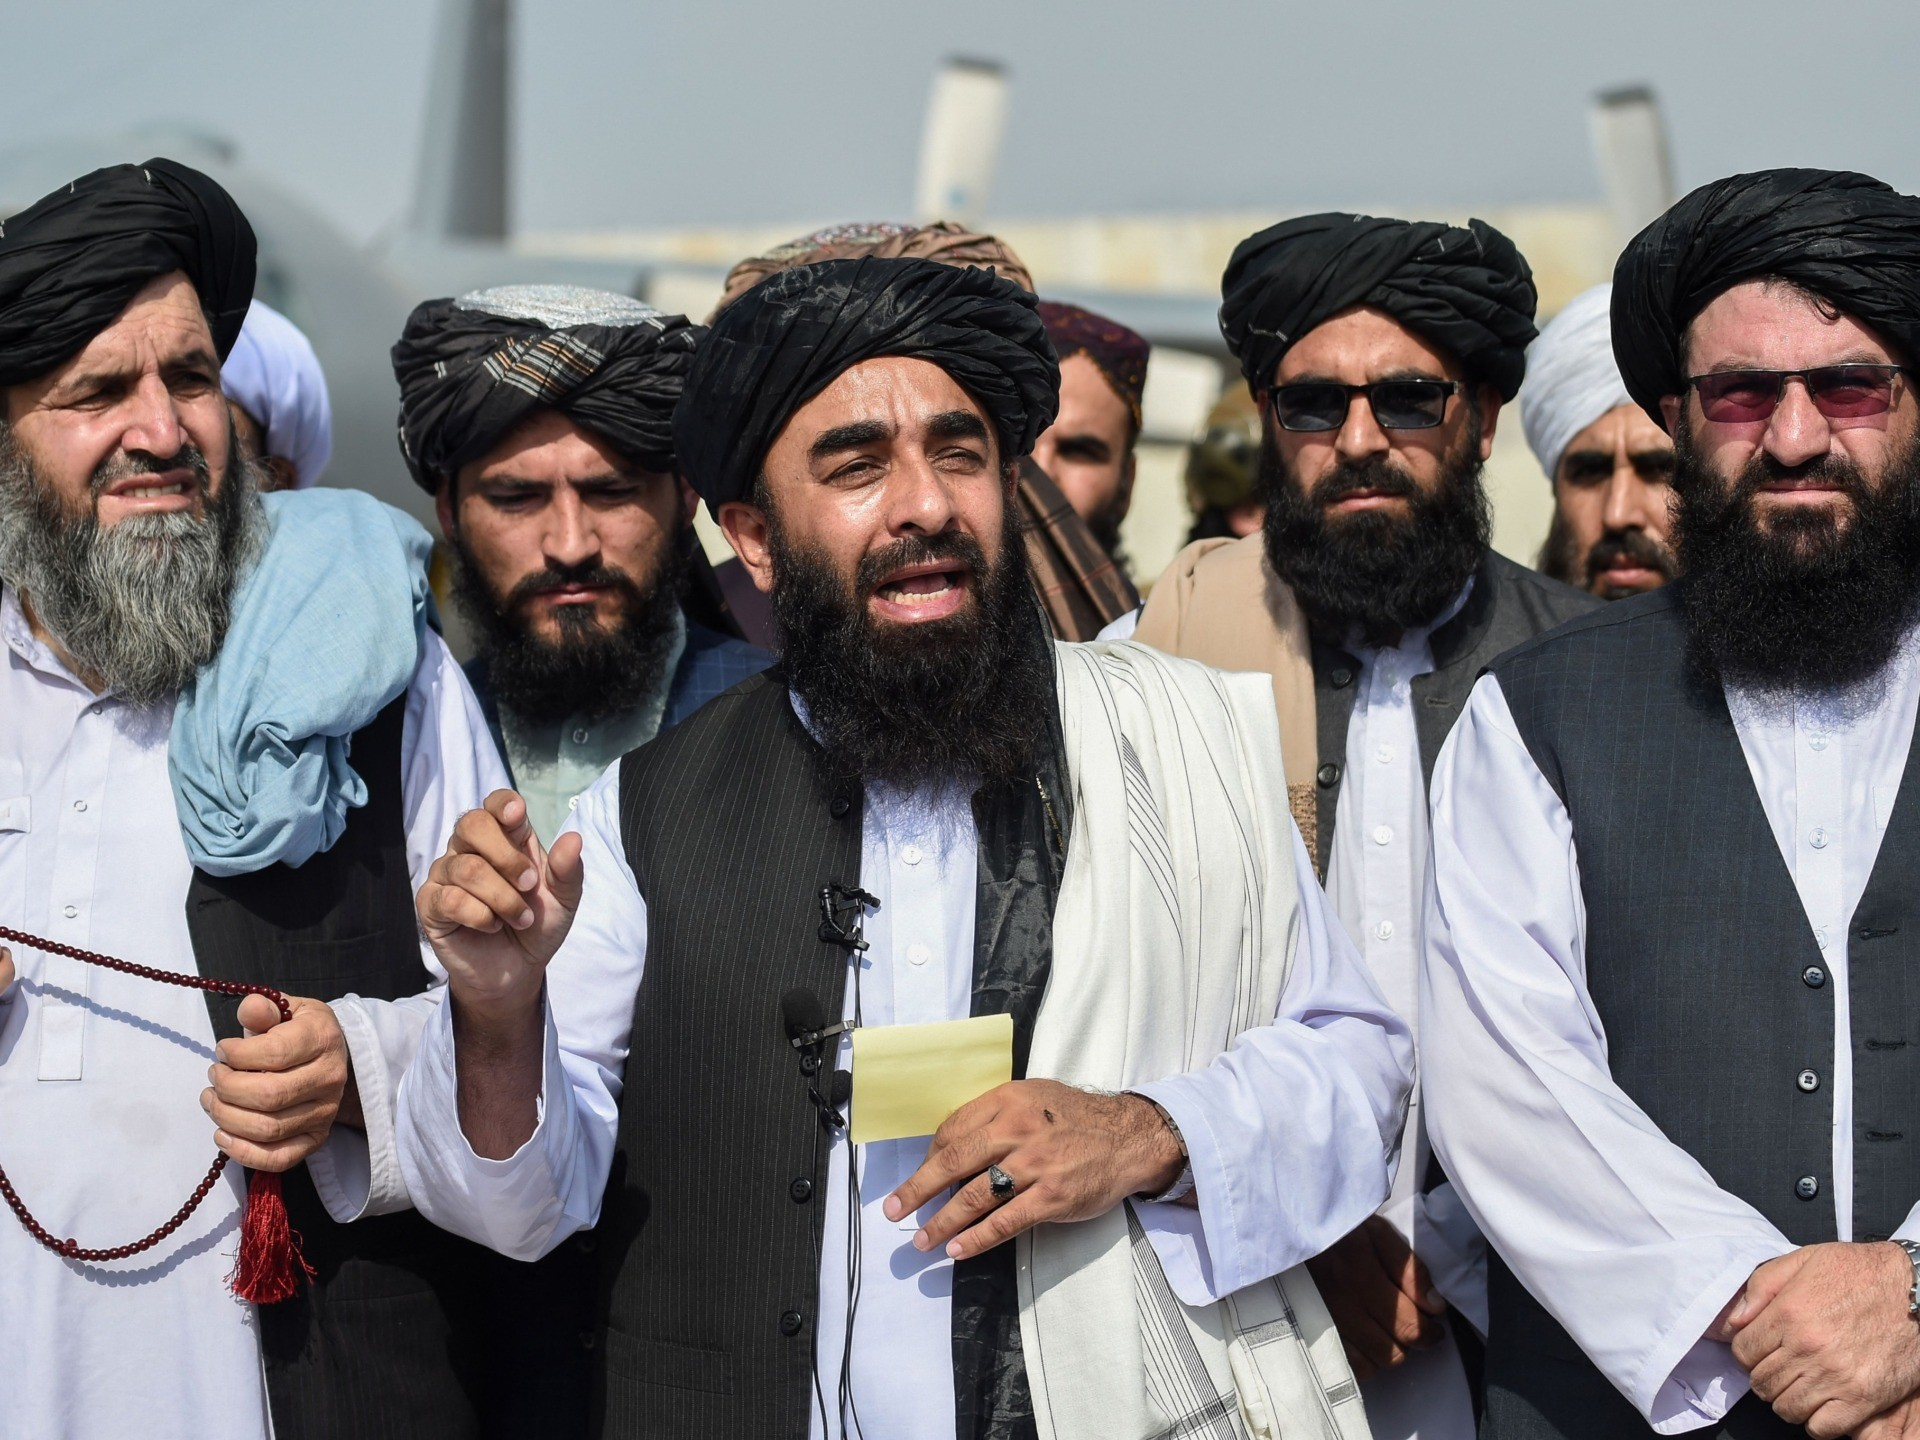 Taliban spokesman Zabihullah Mujahid (C) addresses a media conference at the airport in Kabul on August 31, 2021. - The Taliban joyously fired guns into the air and offered words of reconciliation on August 31, as they celebrated defeating the United States and returning to power after two decades of war that devastated Afghanistan. (Photo by WAKIL KOHSAR / AFP) (Photo by WAKIL KOHSAR/AFP via Getty Images)